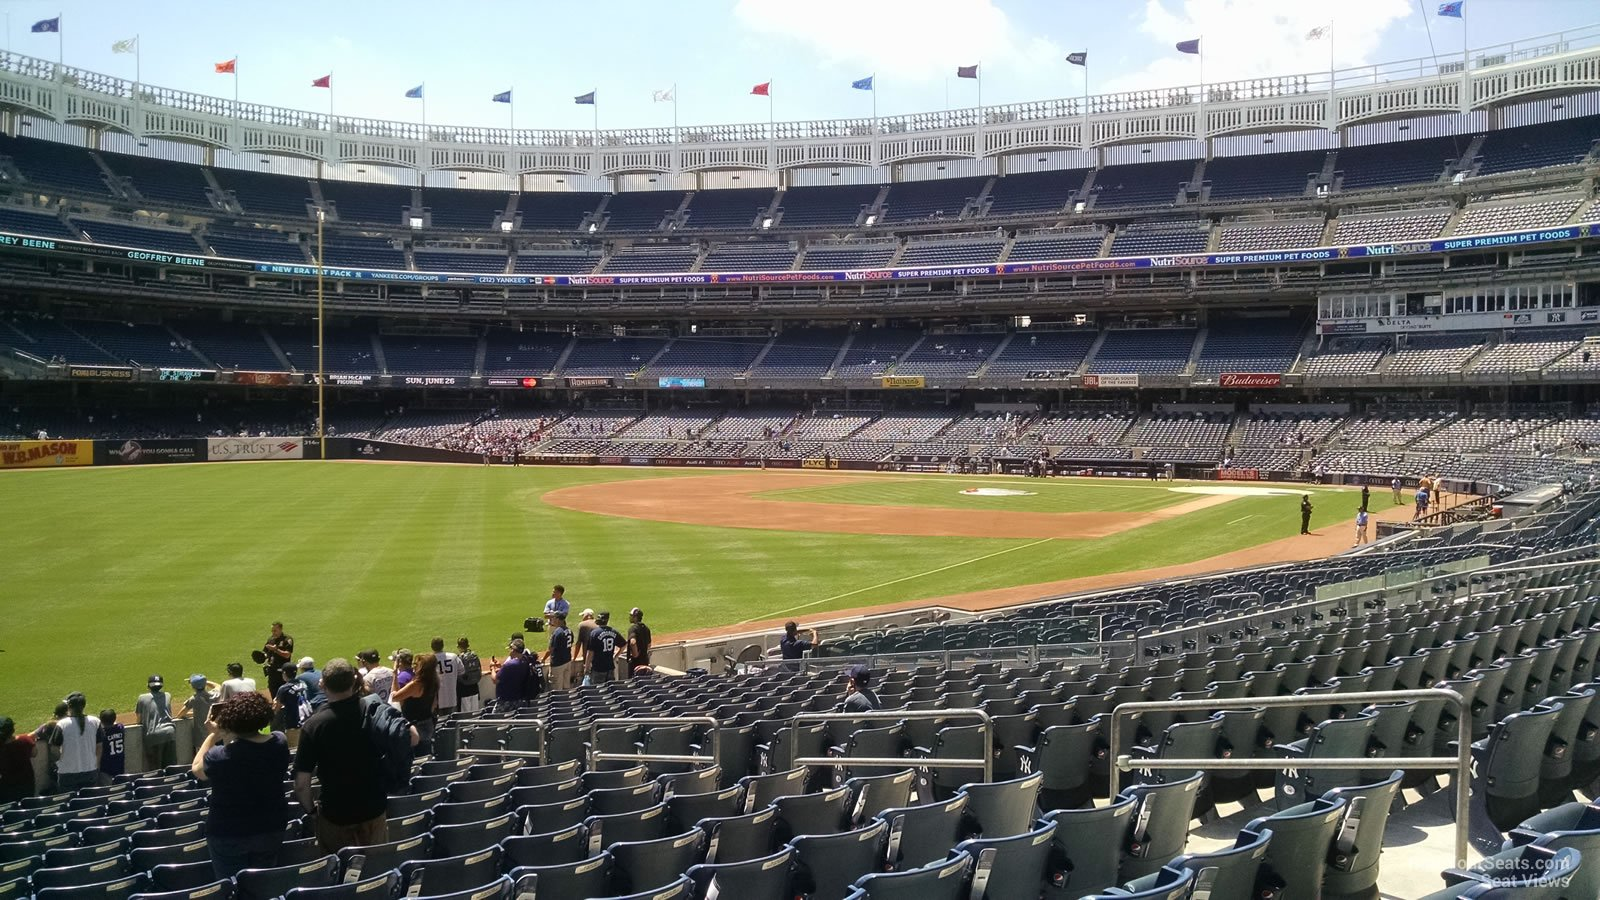 New York Yankees Seat View for Yankee Stadium Section 130, Row 18